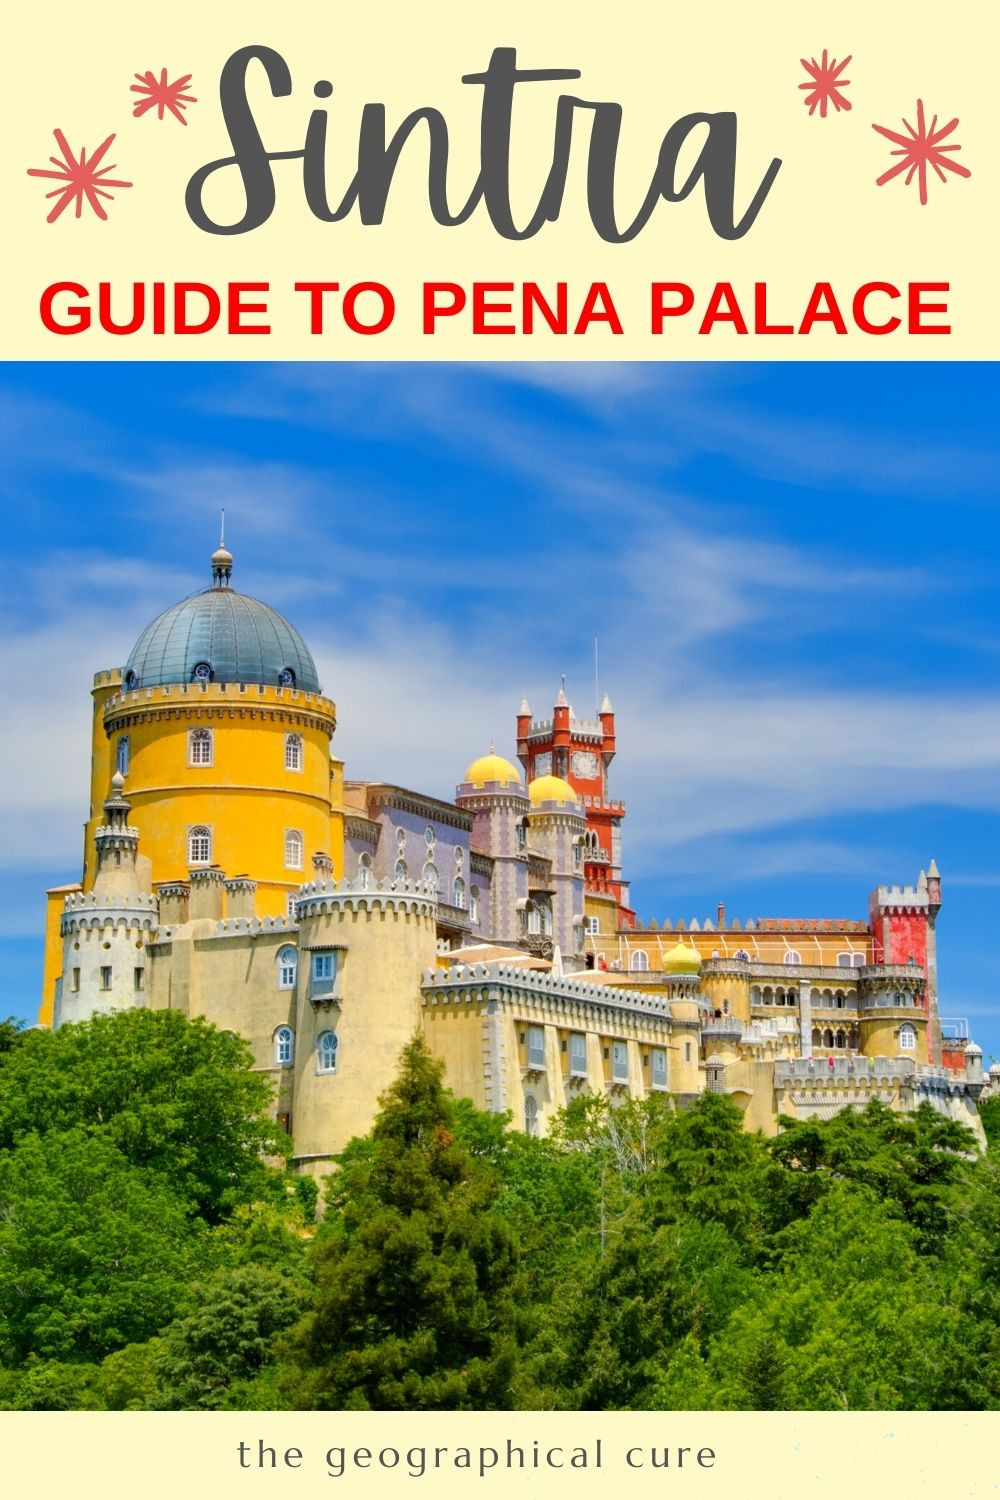 Guide to Pena Palace in Sintra Portugal